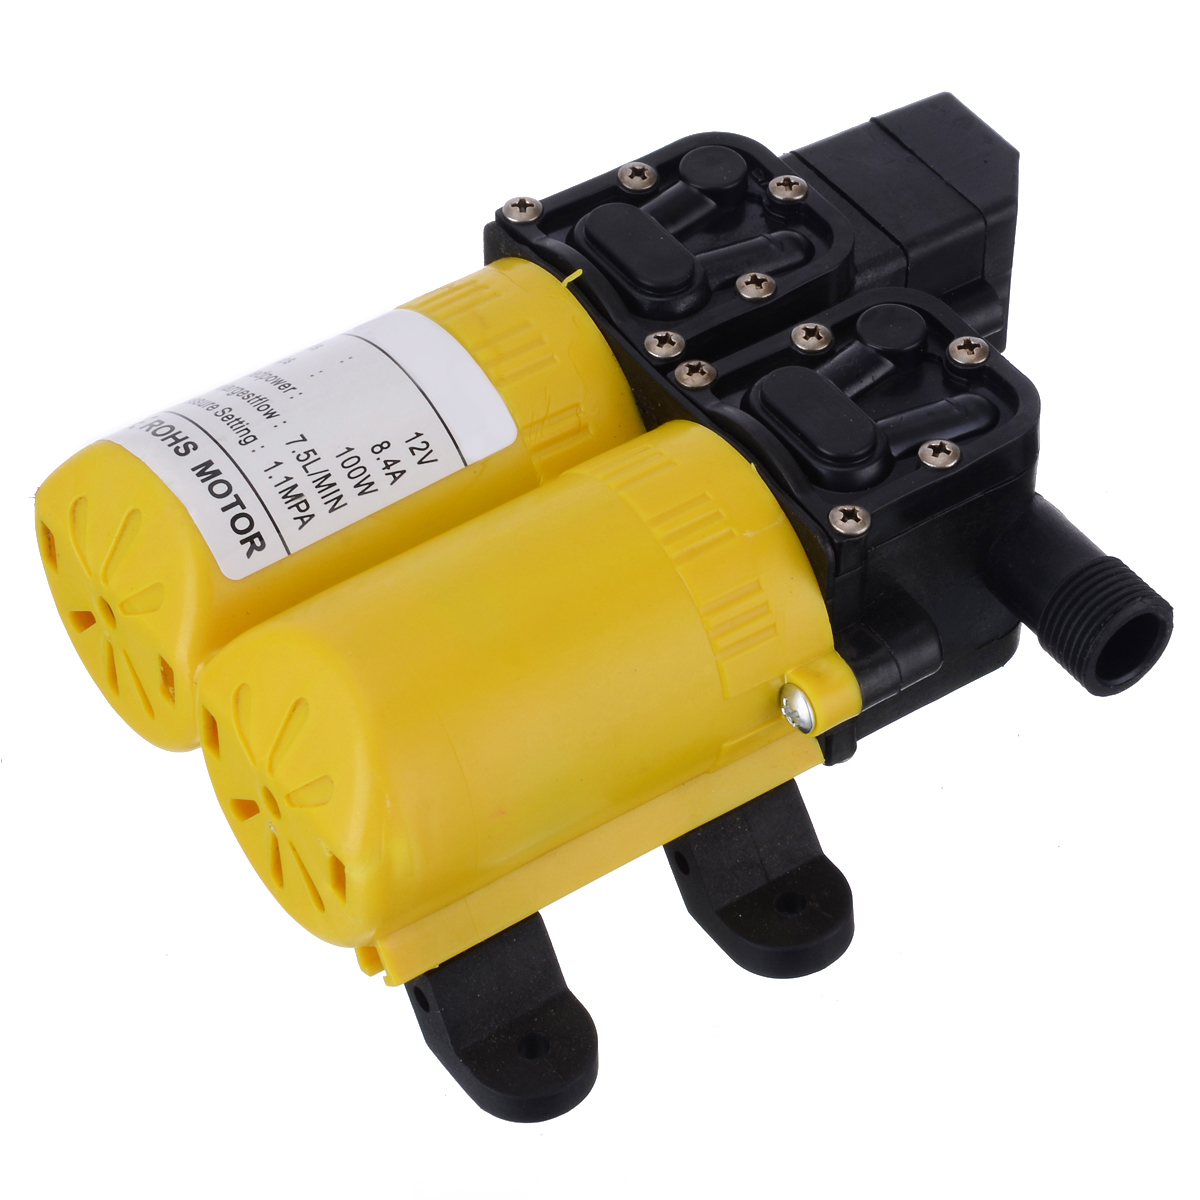 DC 12V 100W Auto Self Priming Water Pump High Pressure Diaphragm Small Safe Pump Boat Caravan Marine Motor